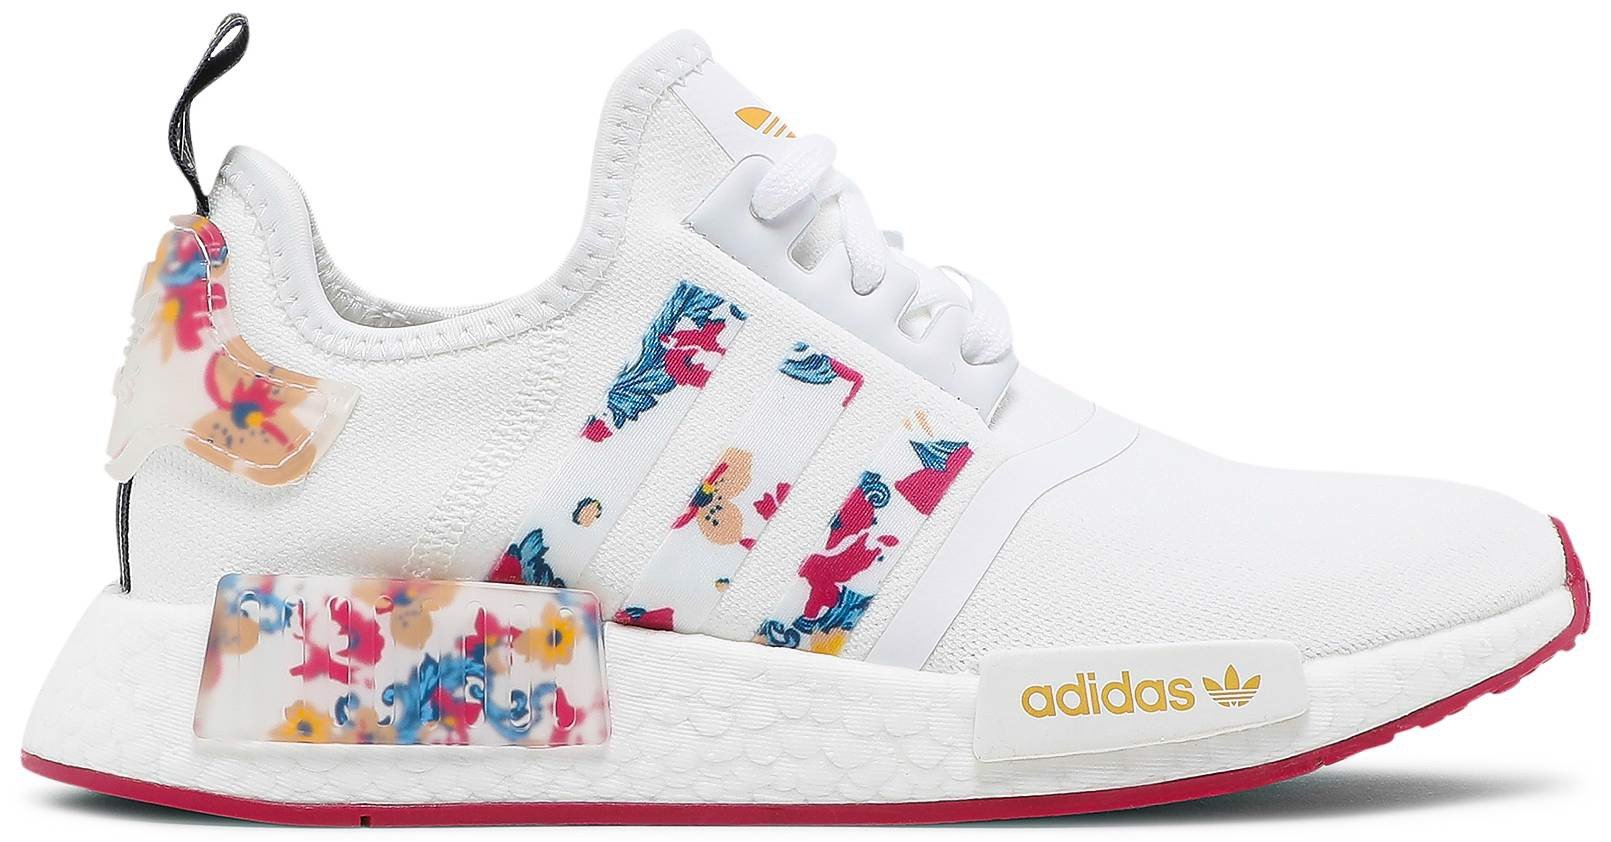 Adidas Her Studio London x Wmns NMD_R1 'Floral White' FY3666